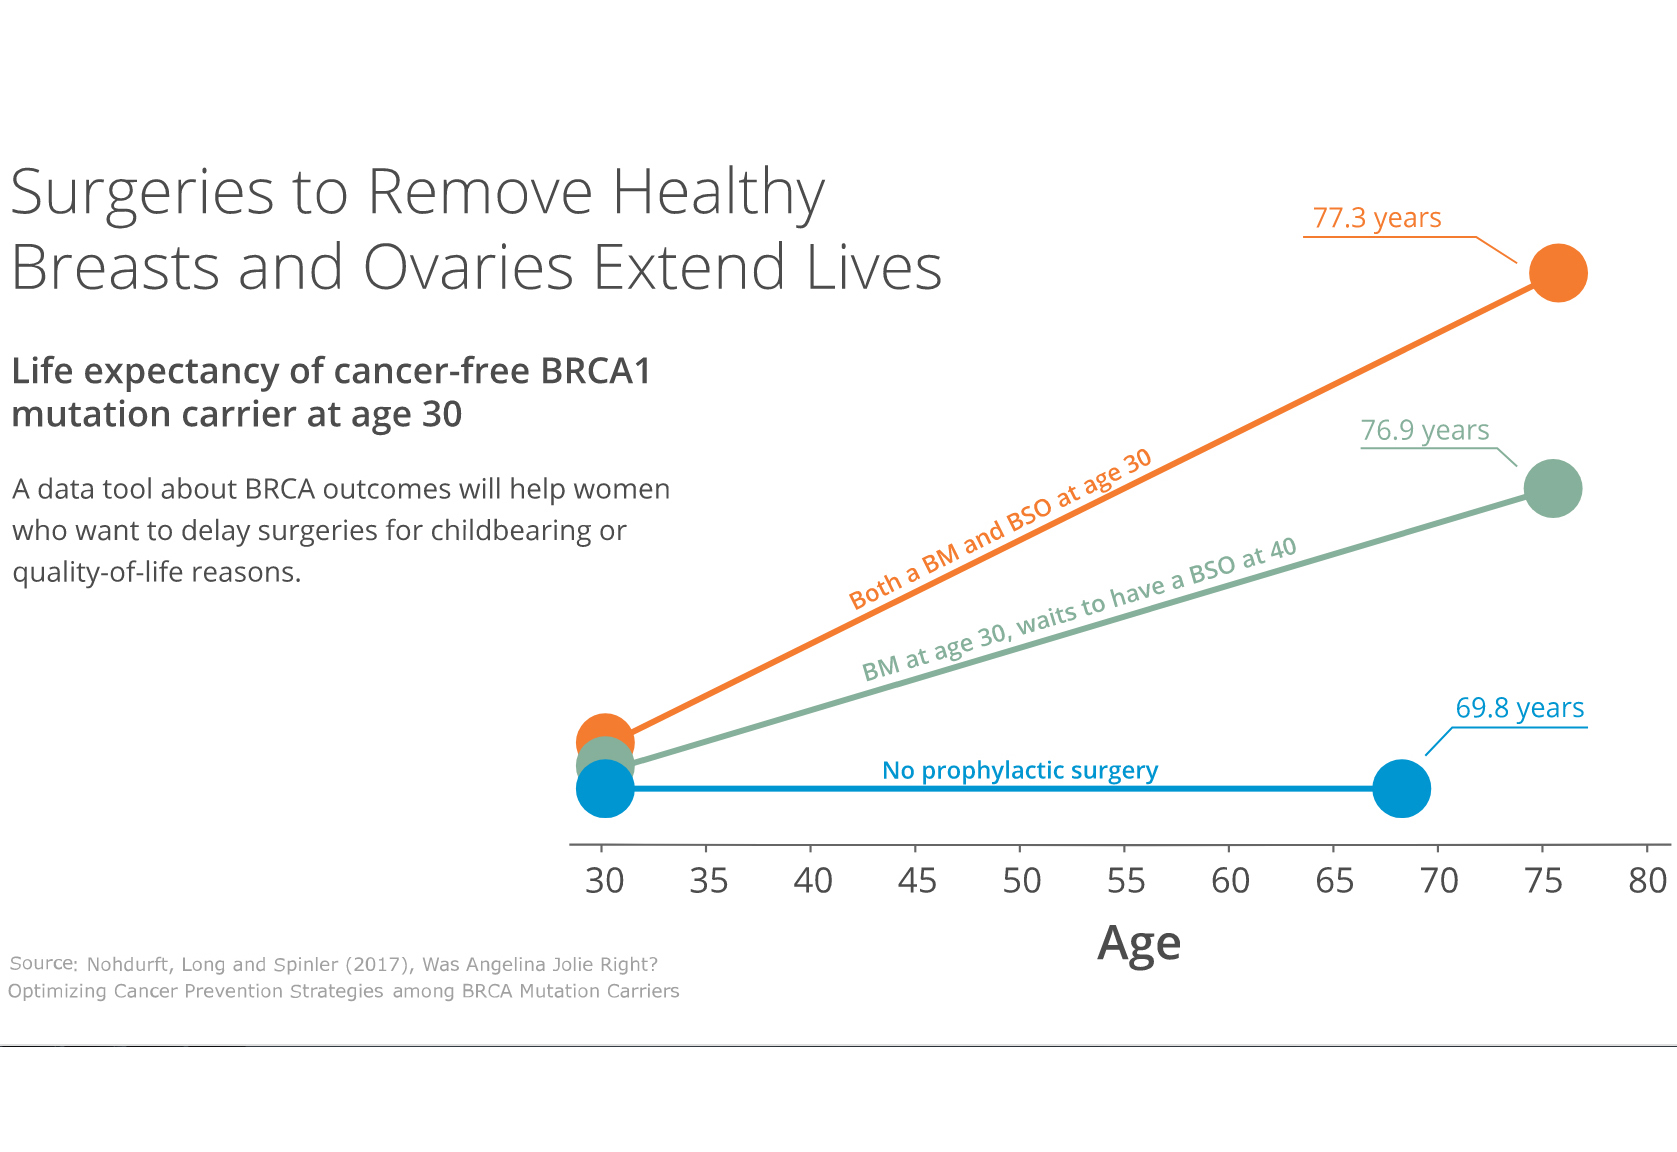 Graph showing how surgeries to remove healthy breasts and ovaries can extend the lives of women with BRCA 1 mutations.